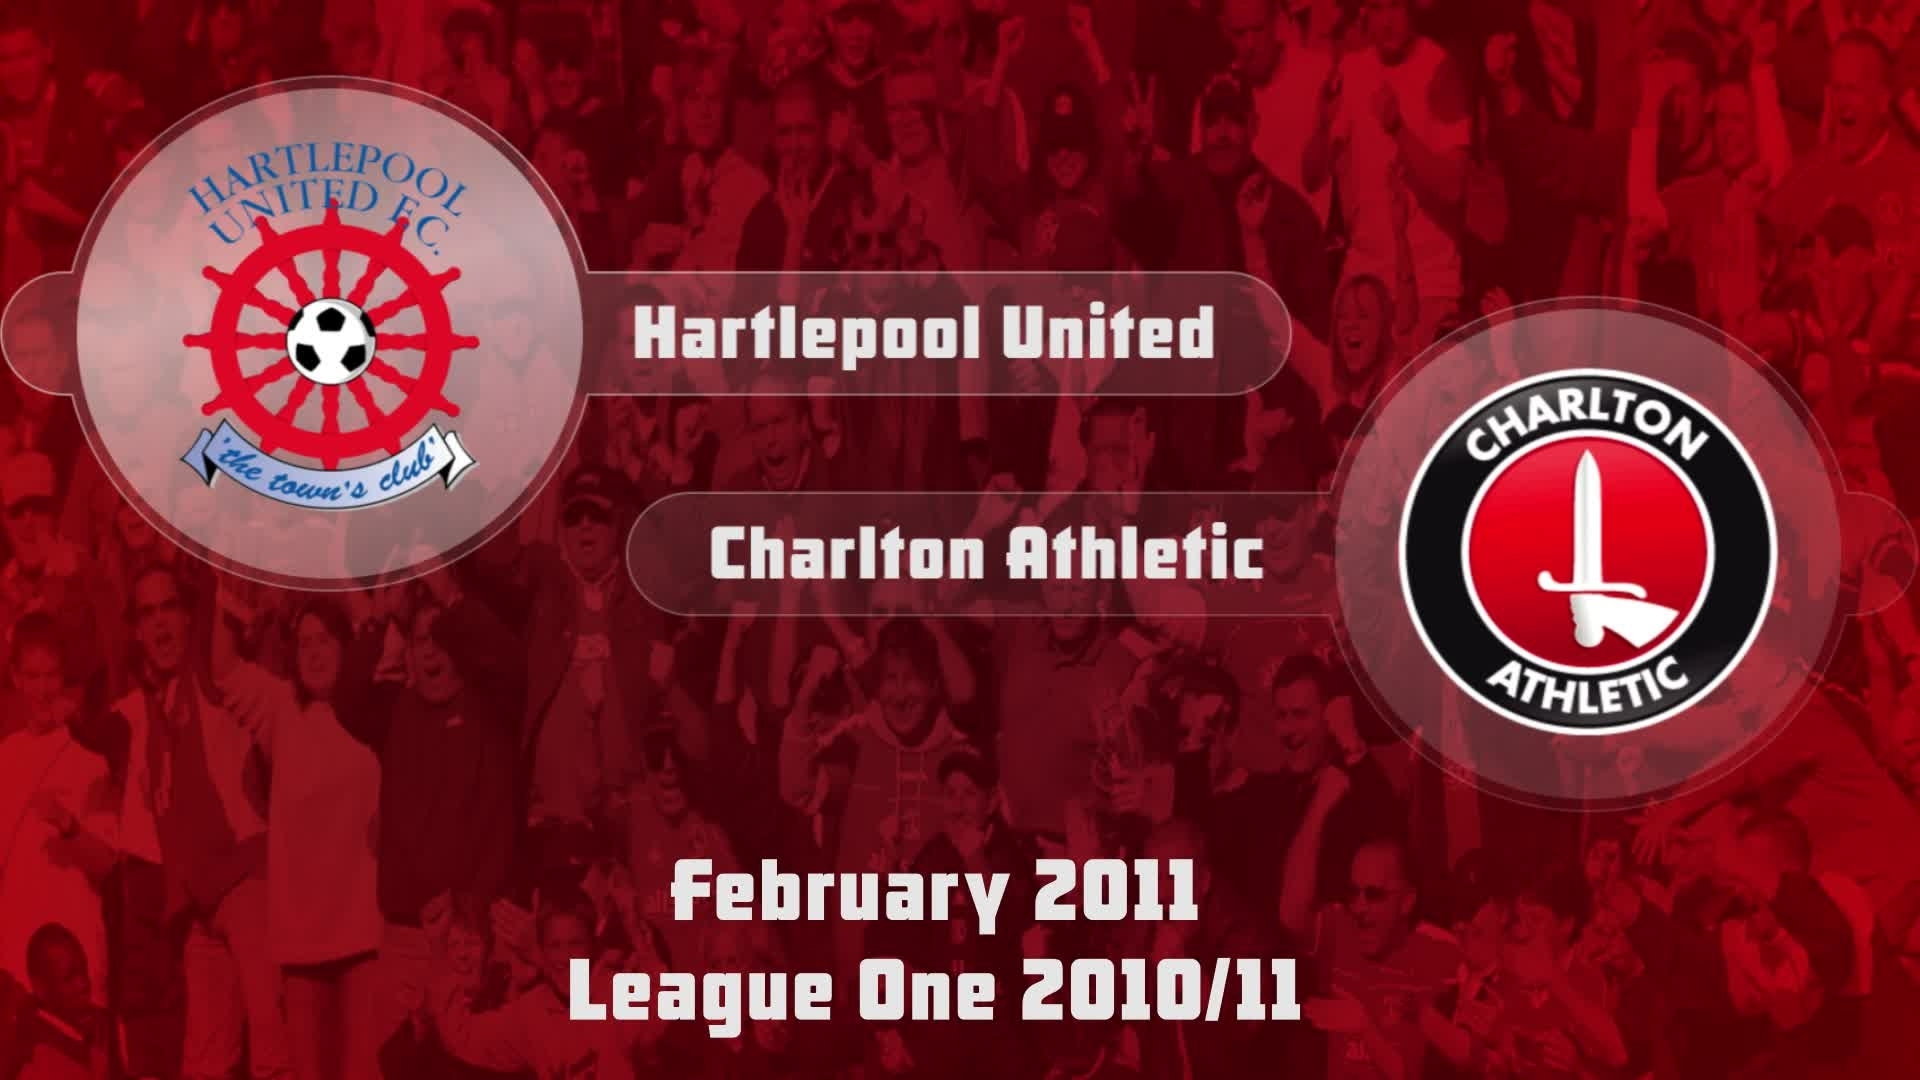 38 HIGHLIGHTS | Hartlepool 2 Charlton 1 (Feb 2011)